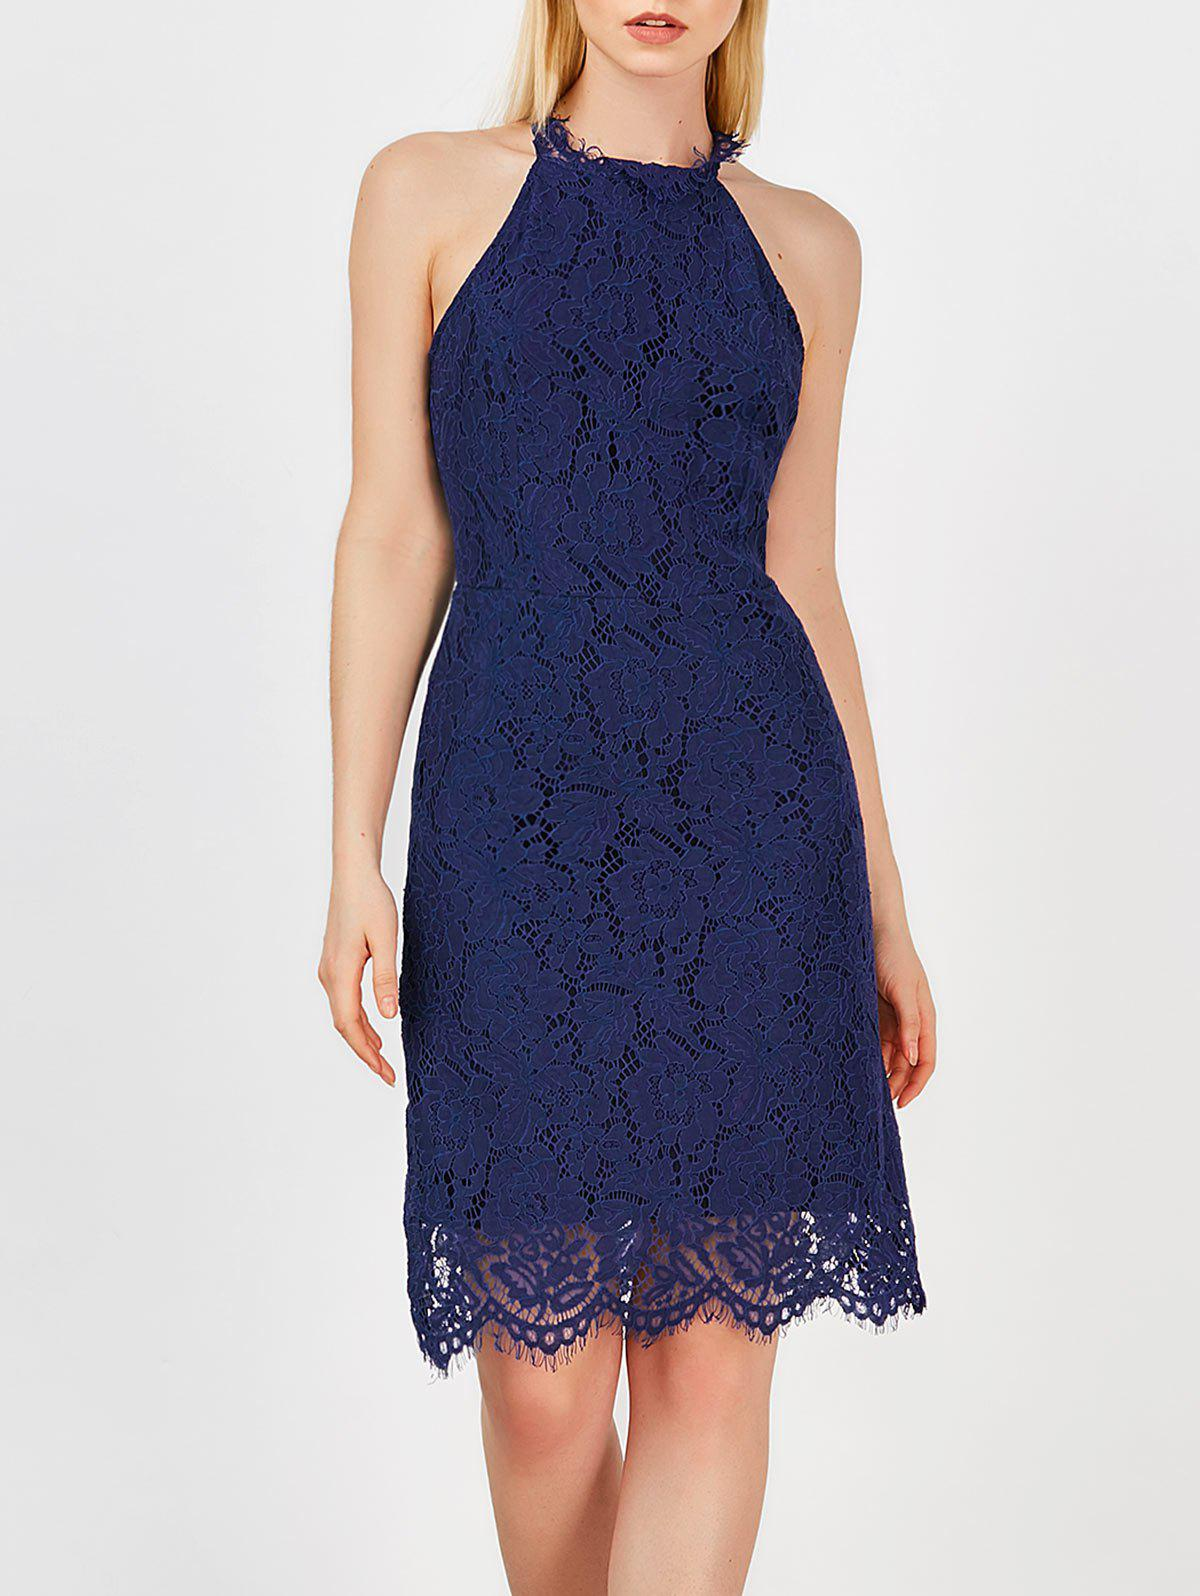 Unique Backless Sleeveless Lace Party Dress